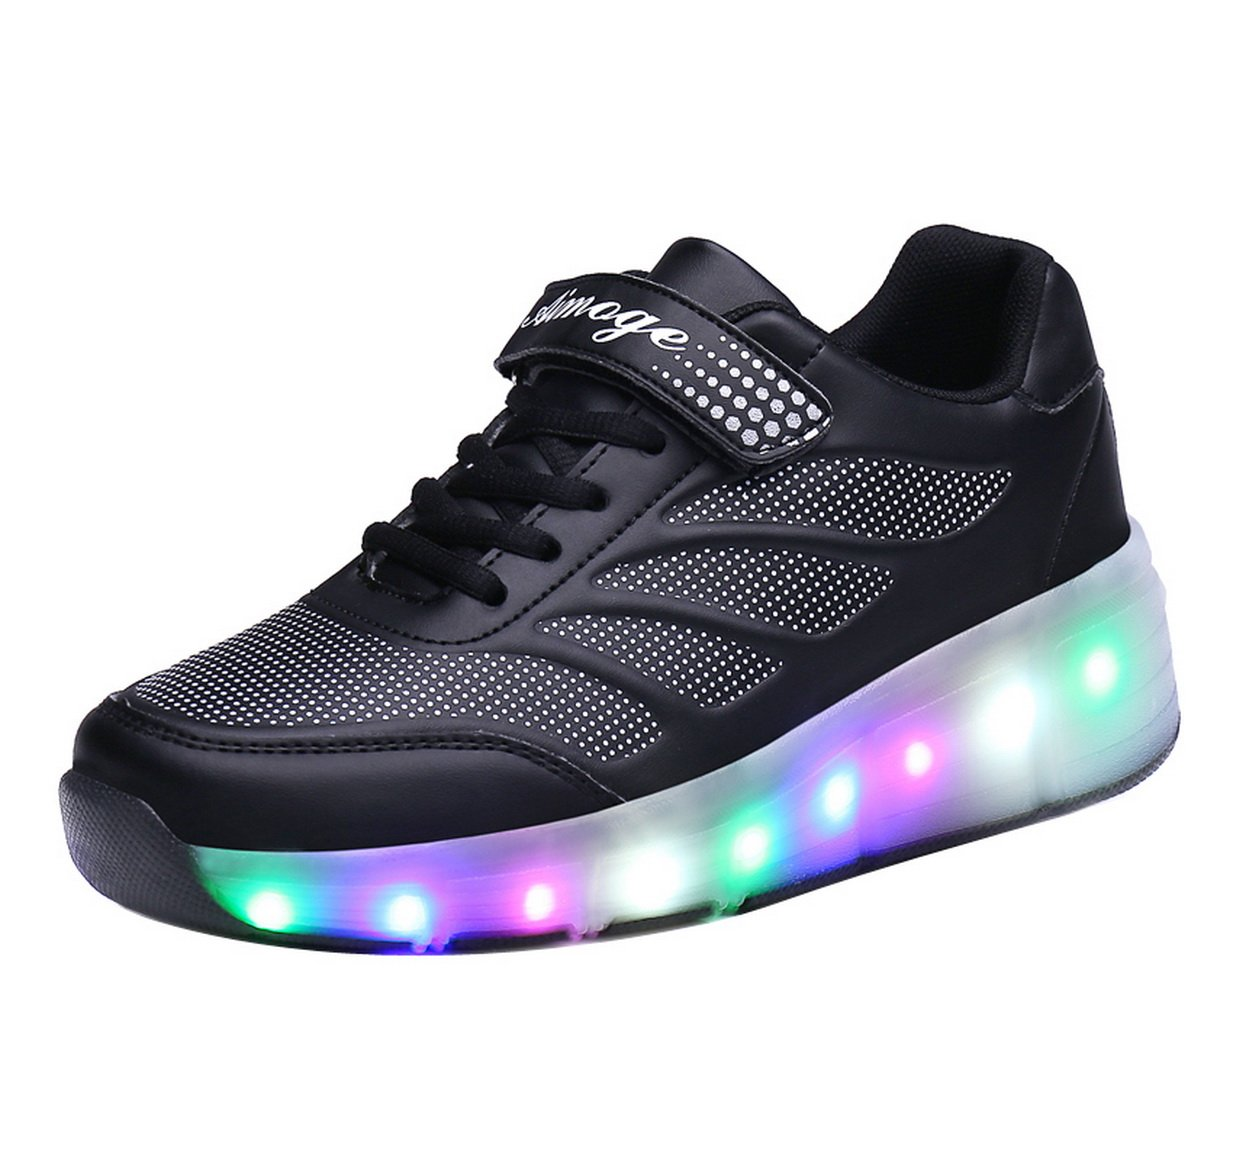 FOUPLER Girl's Boy's LED Light Single Wheel Roller Shoes Kids Skate Sneaker 02Black 1/32